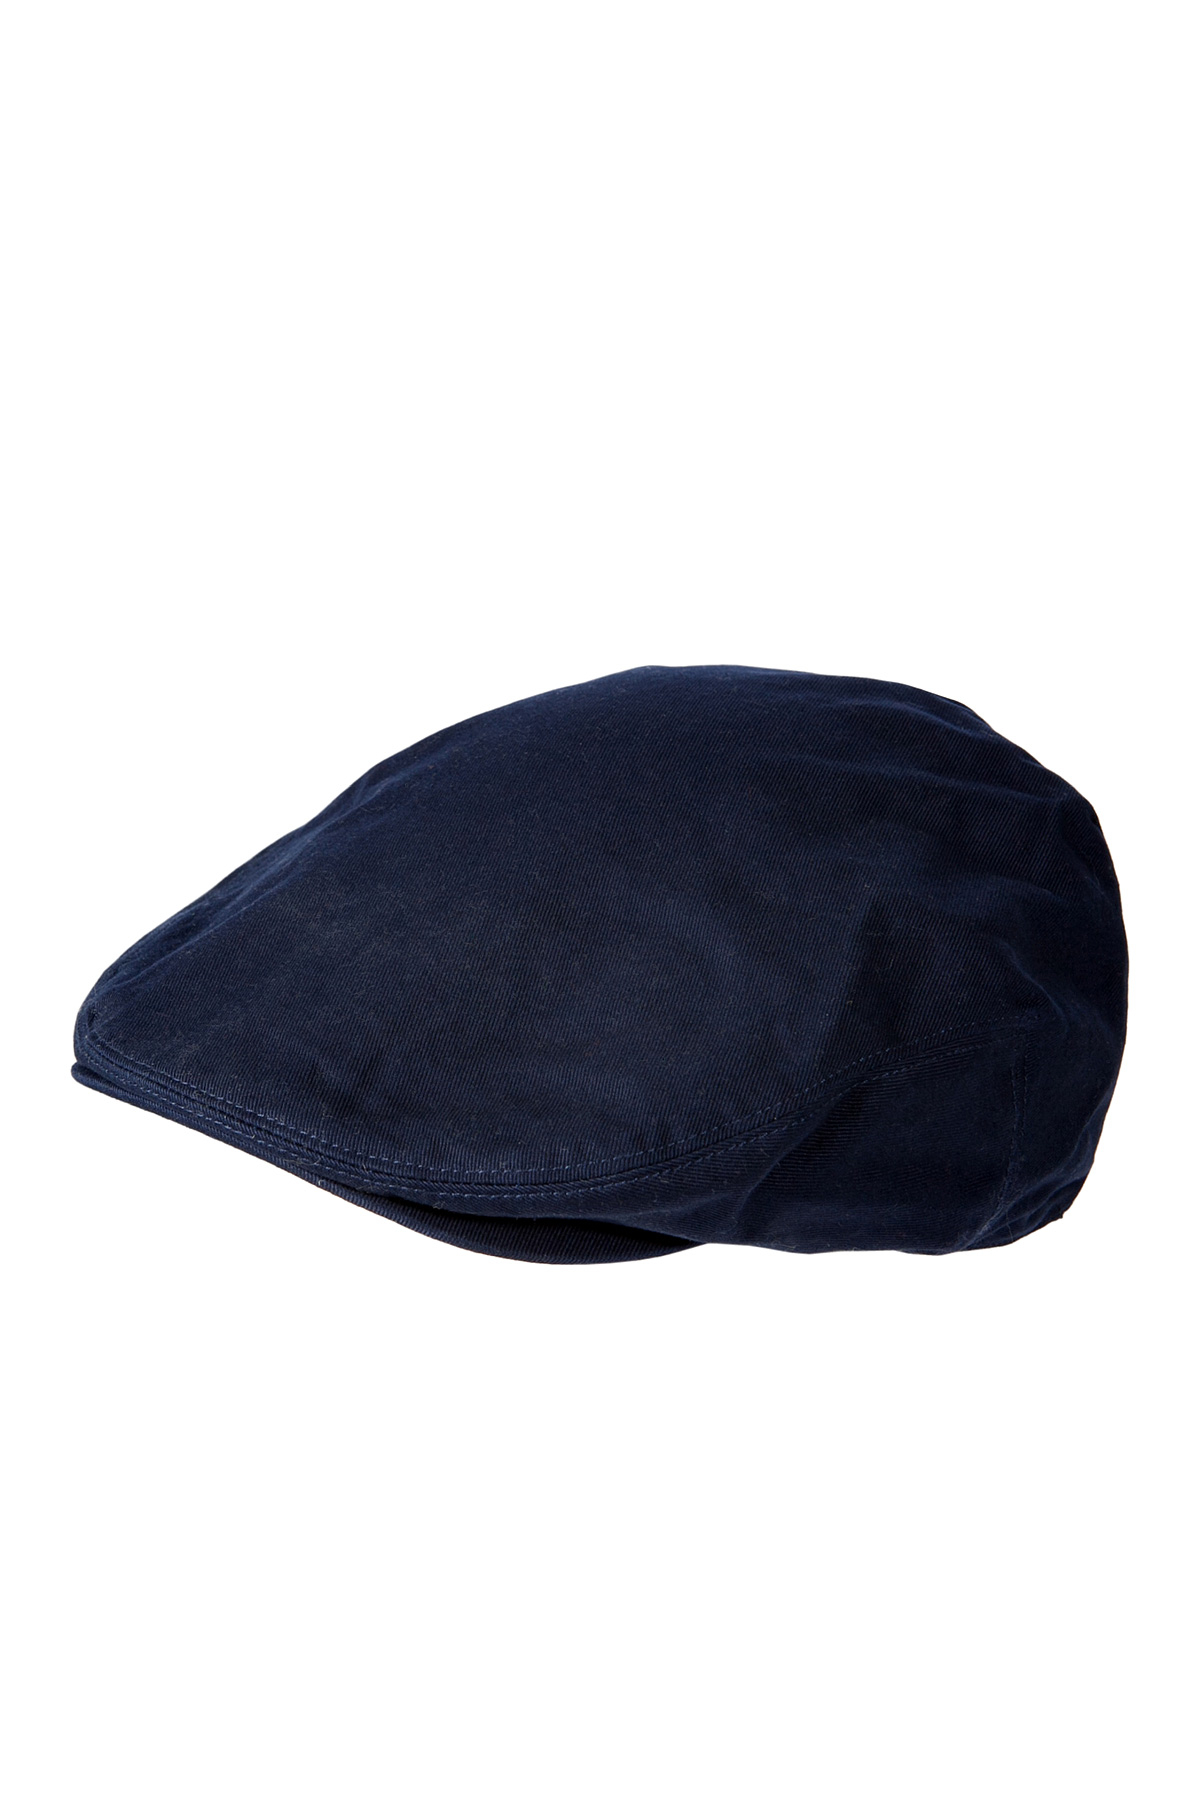 bc57803b Polo Ralph Lauren Cotton Stretch Estate Driving Cap in French Navy ...